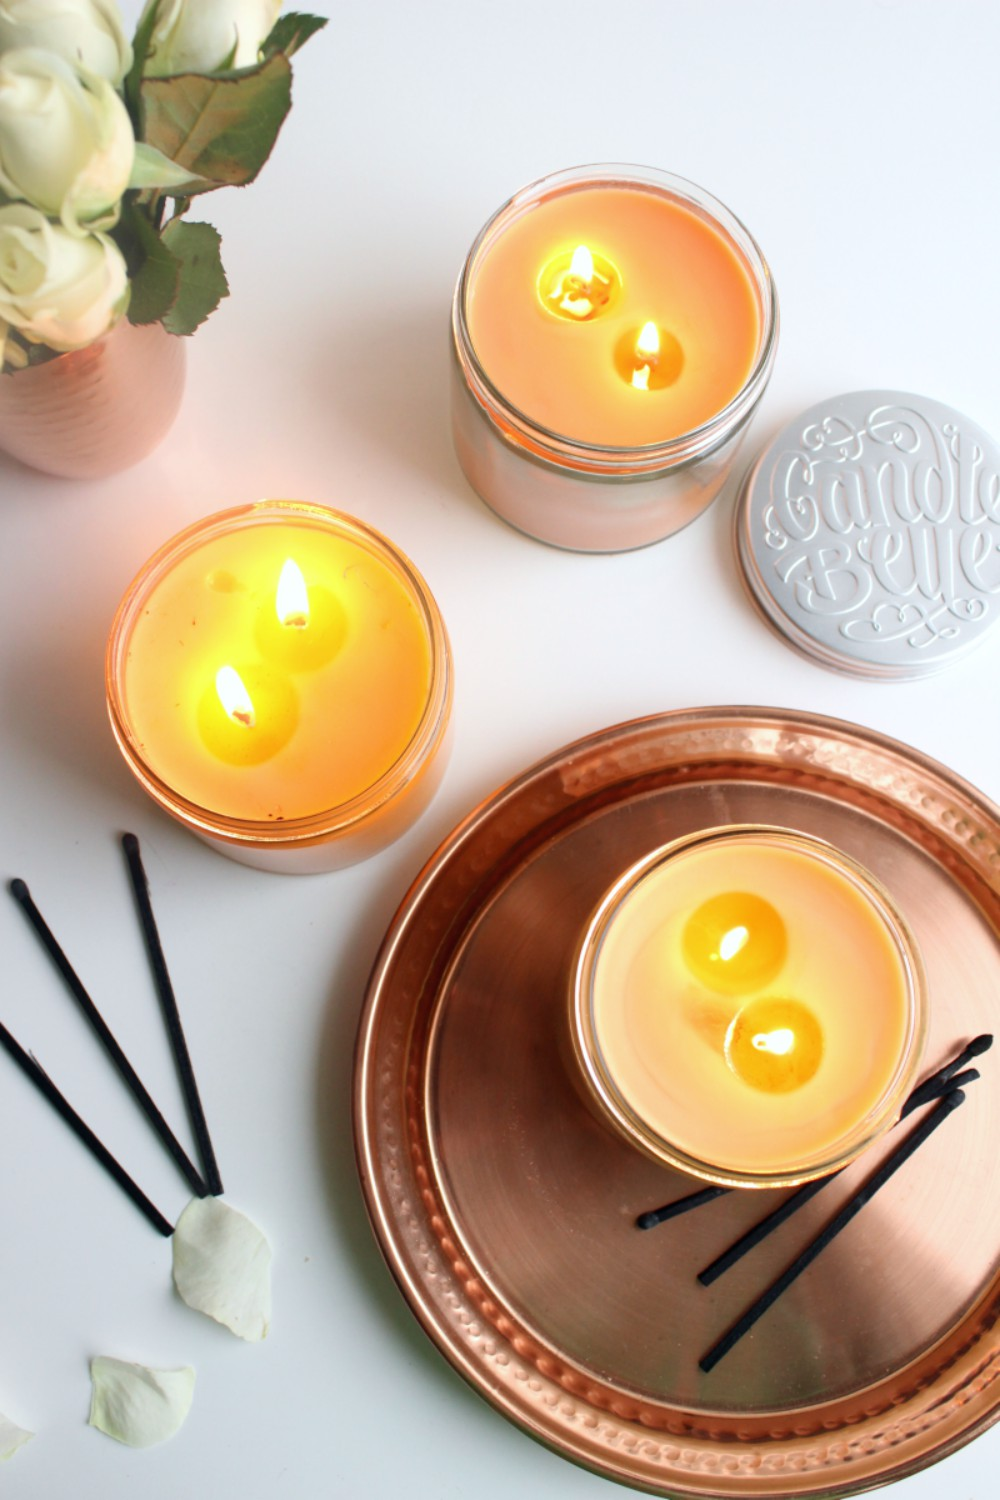 The Best Home Fragrance Brand You've Never Tried